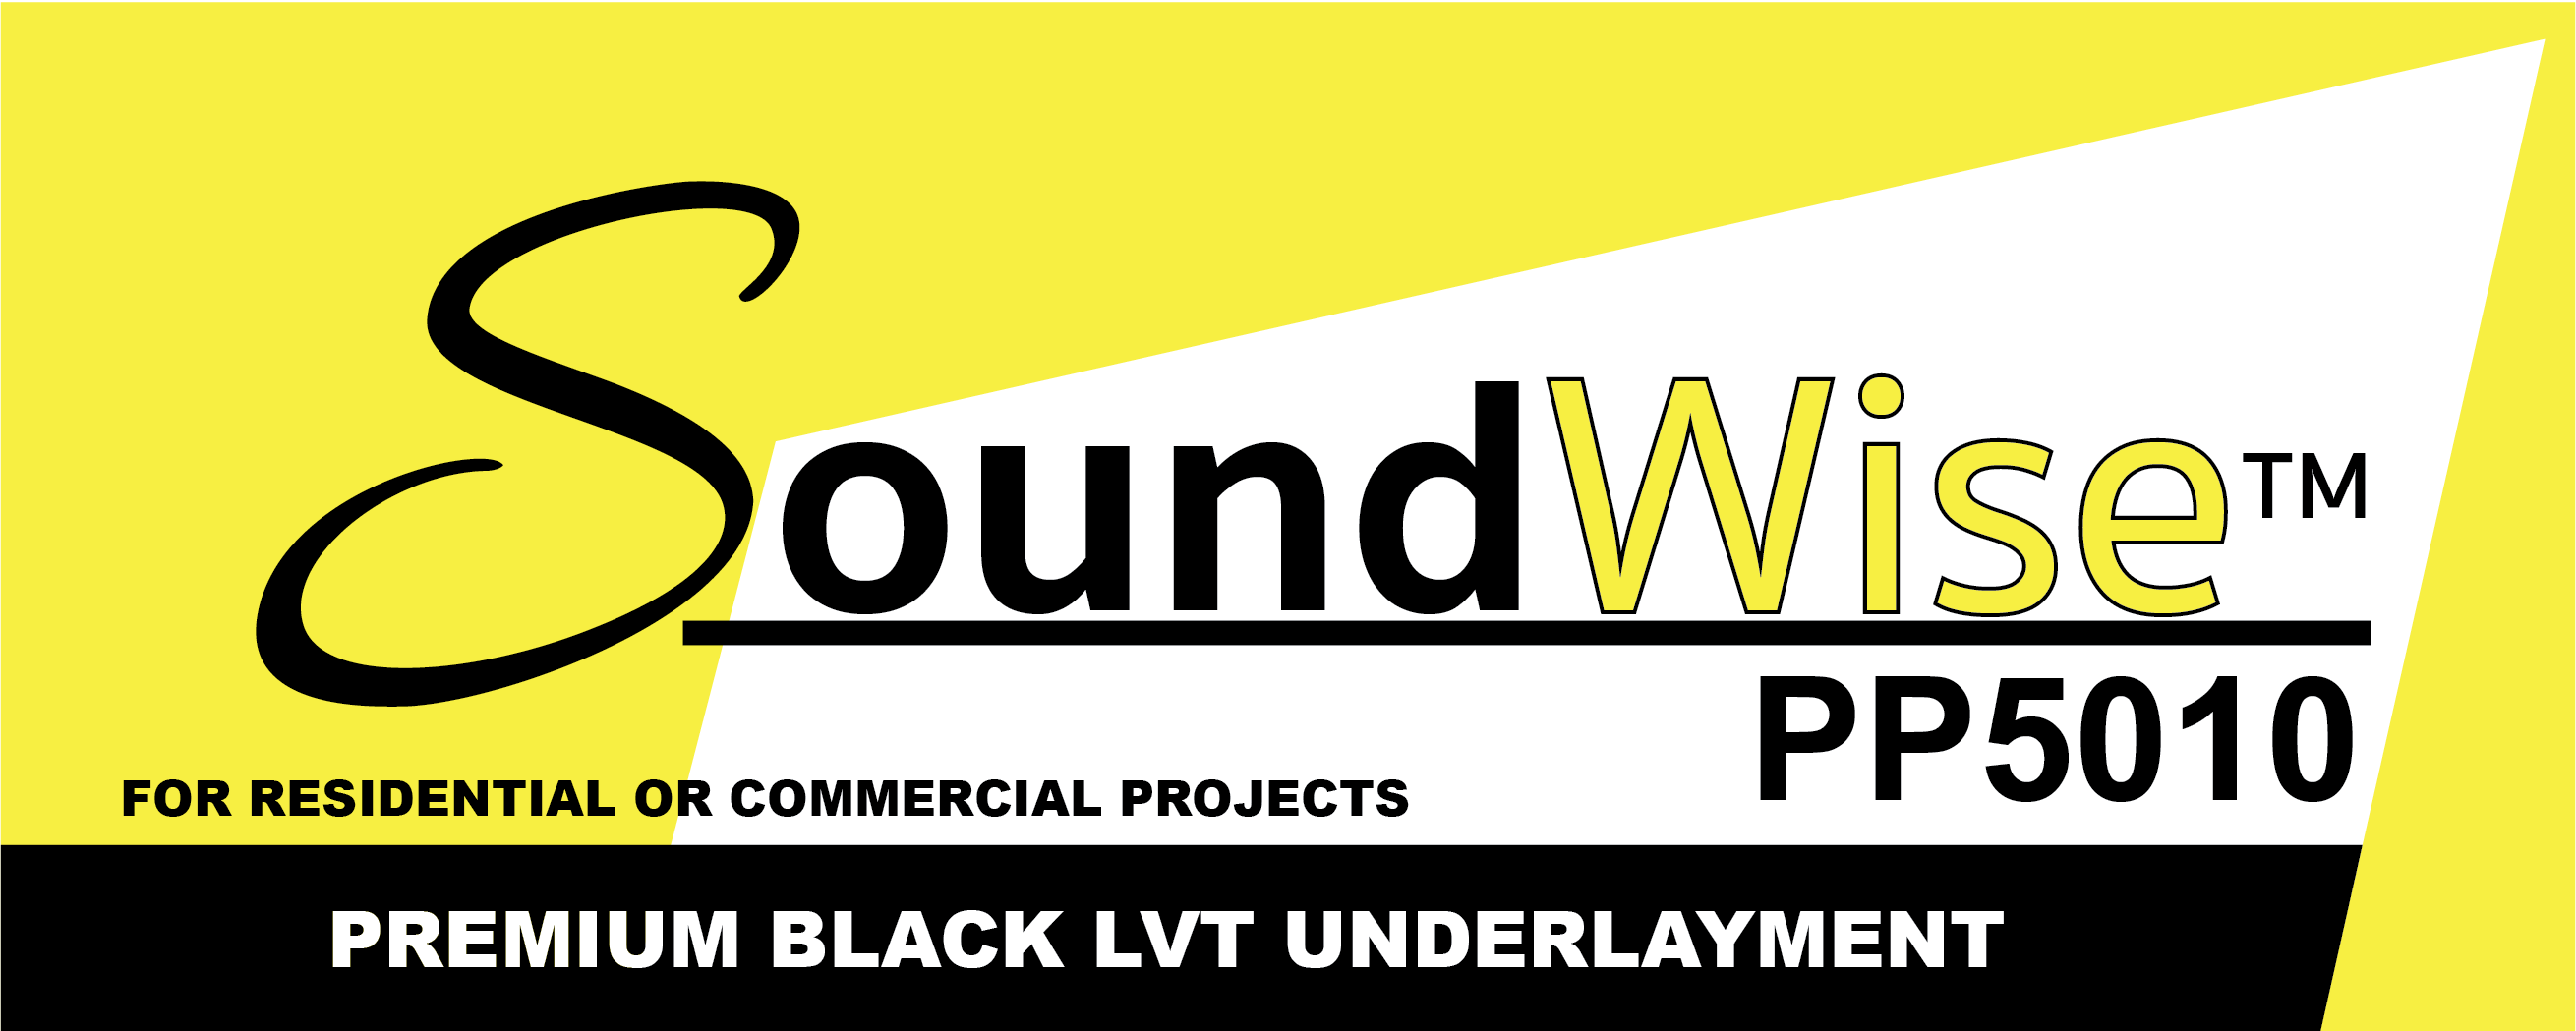 Soundwise™ PP 5010 Premium Black LVT Underlayment with Lapwise™ Seam Sealing Technology by Wise Manufacturing